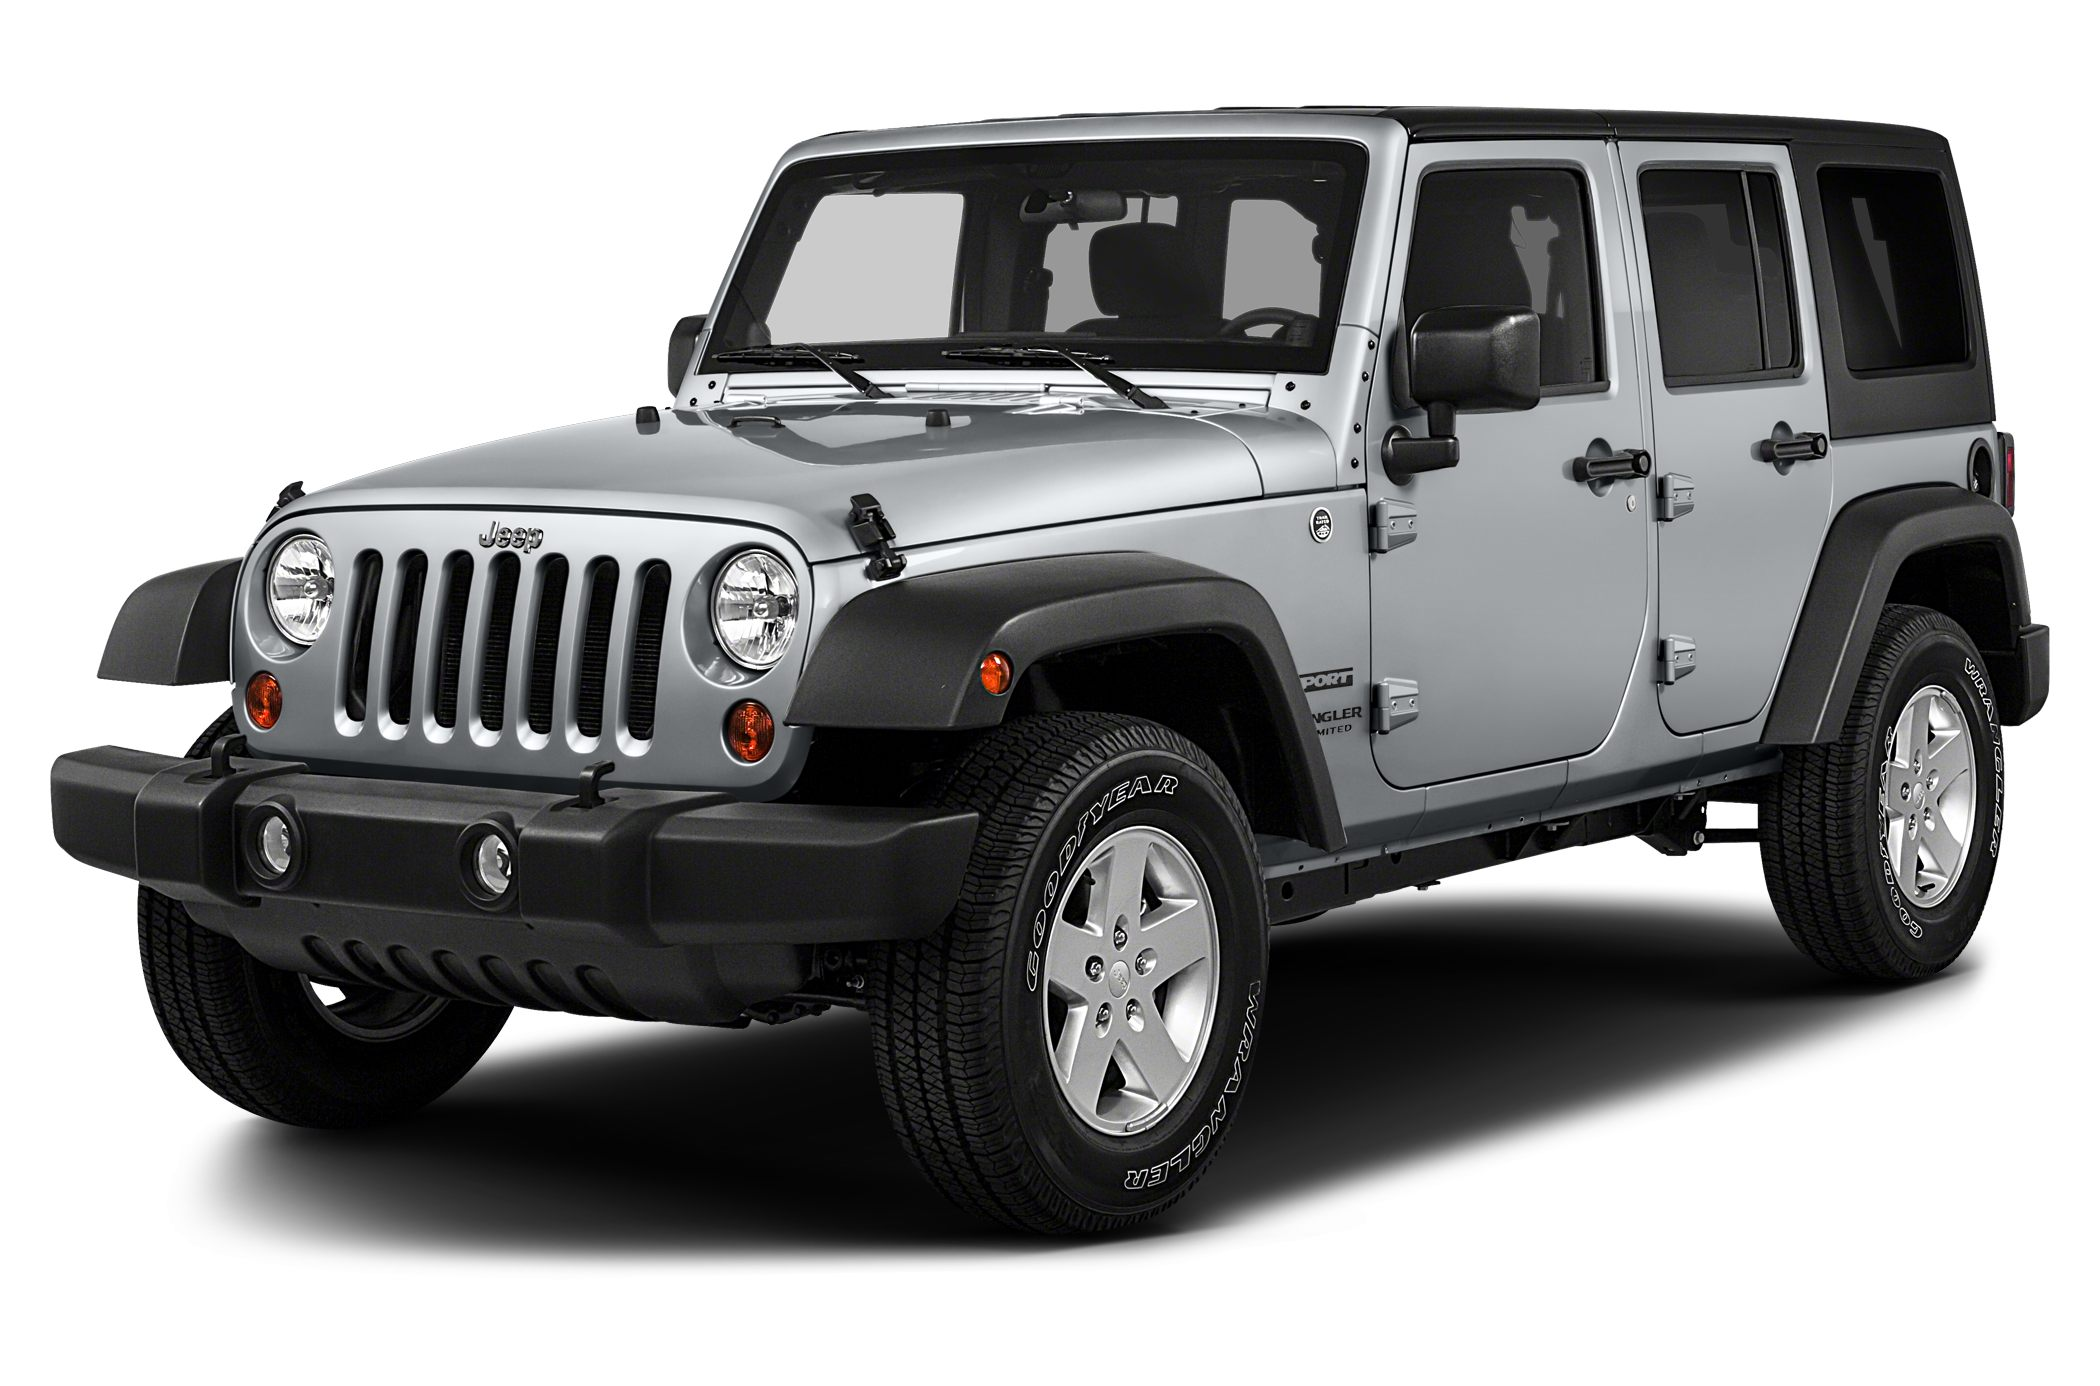 2017JeepWrangler Unlimited